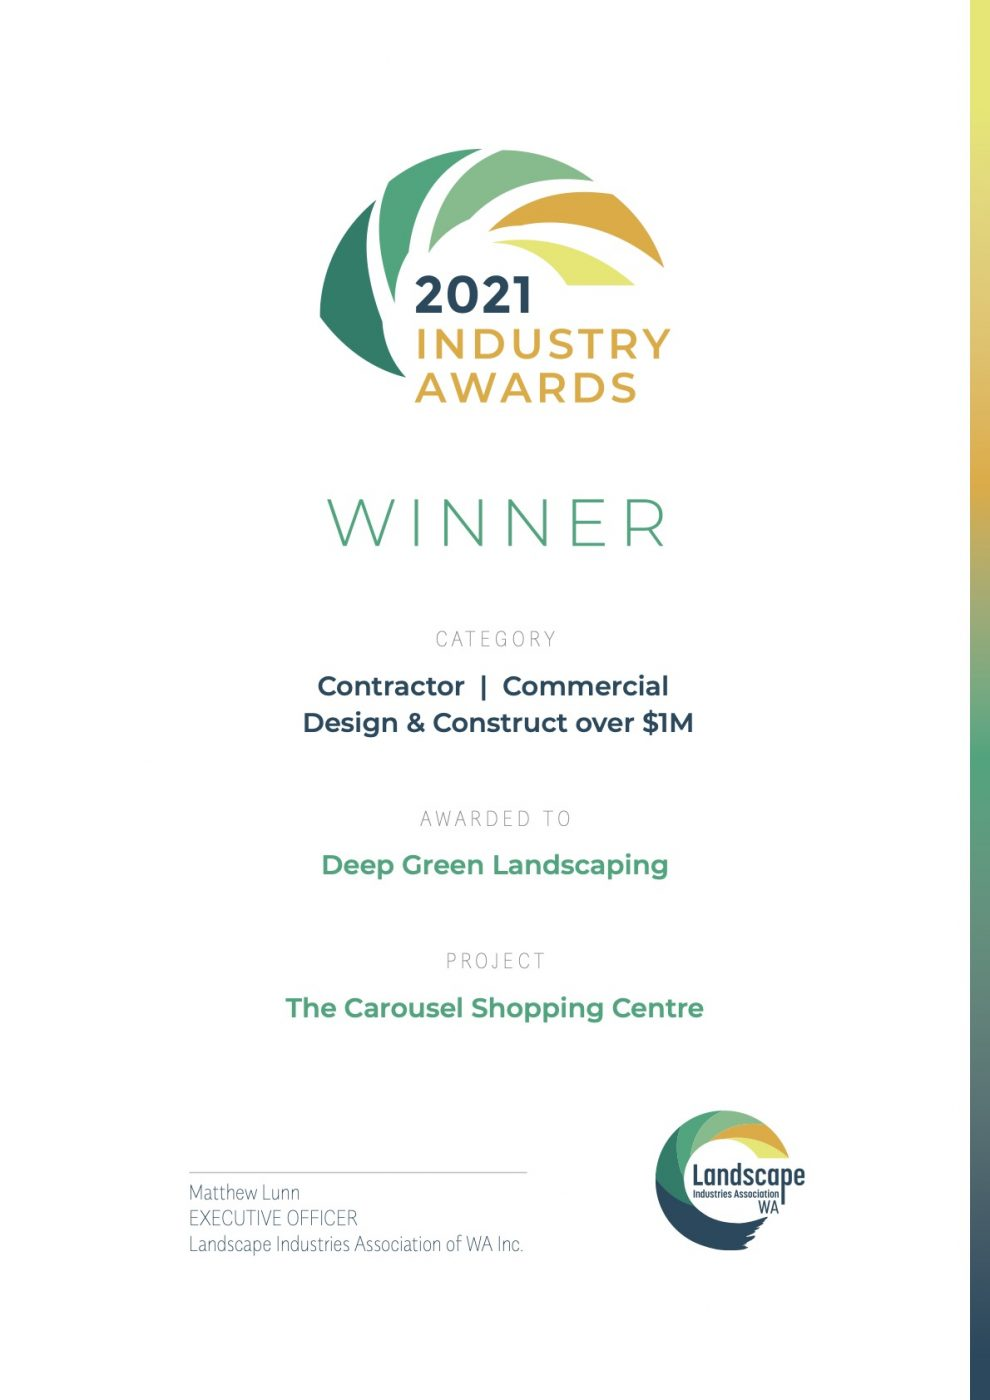 2021 Industry Award Winner for Landscape of the year